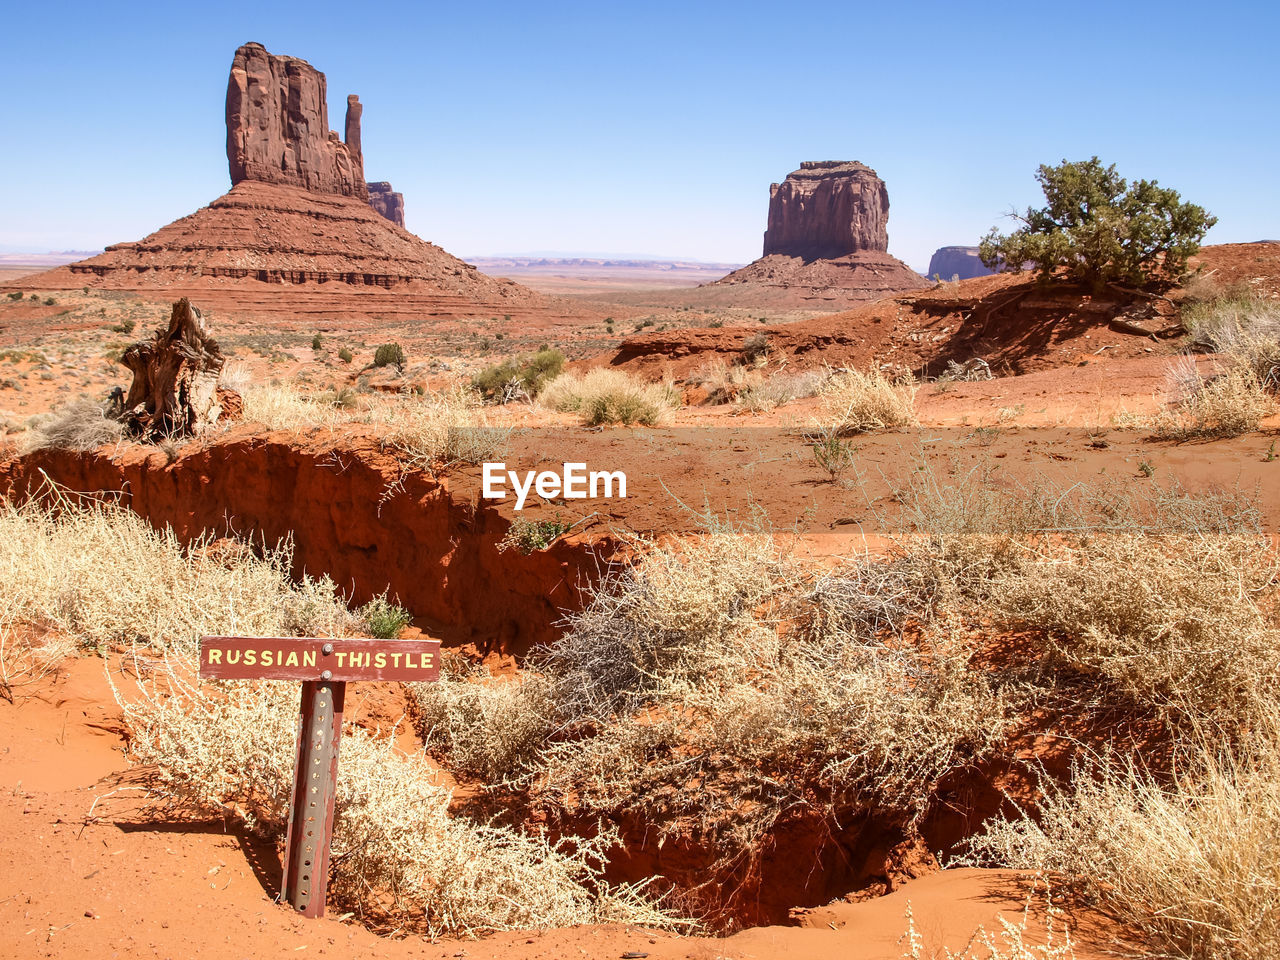 rock formation, geology, rock - object, nature, tranquility, arid climate, tranquil scene, landscape, beauty in nature, physical geography, scenics, day, desert, outdoors, no people, travel destinations, sunlight, plant, clear sky, tree, sky